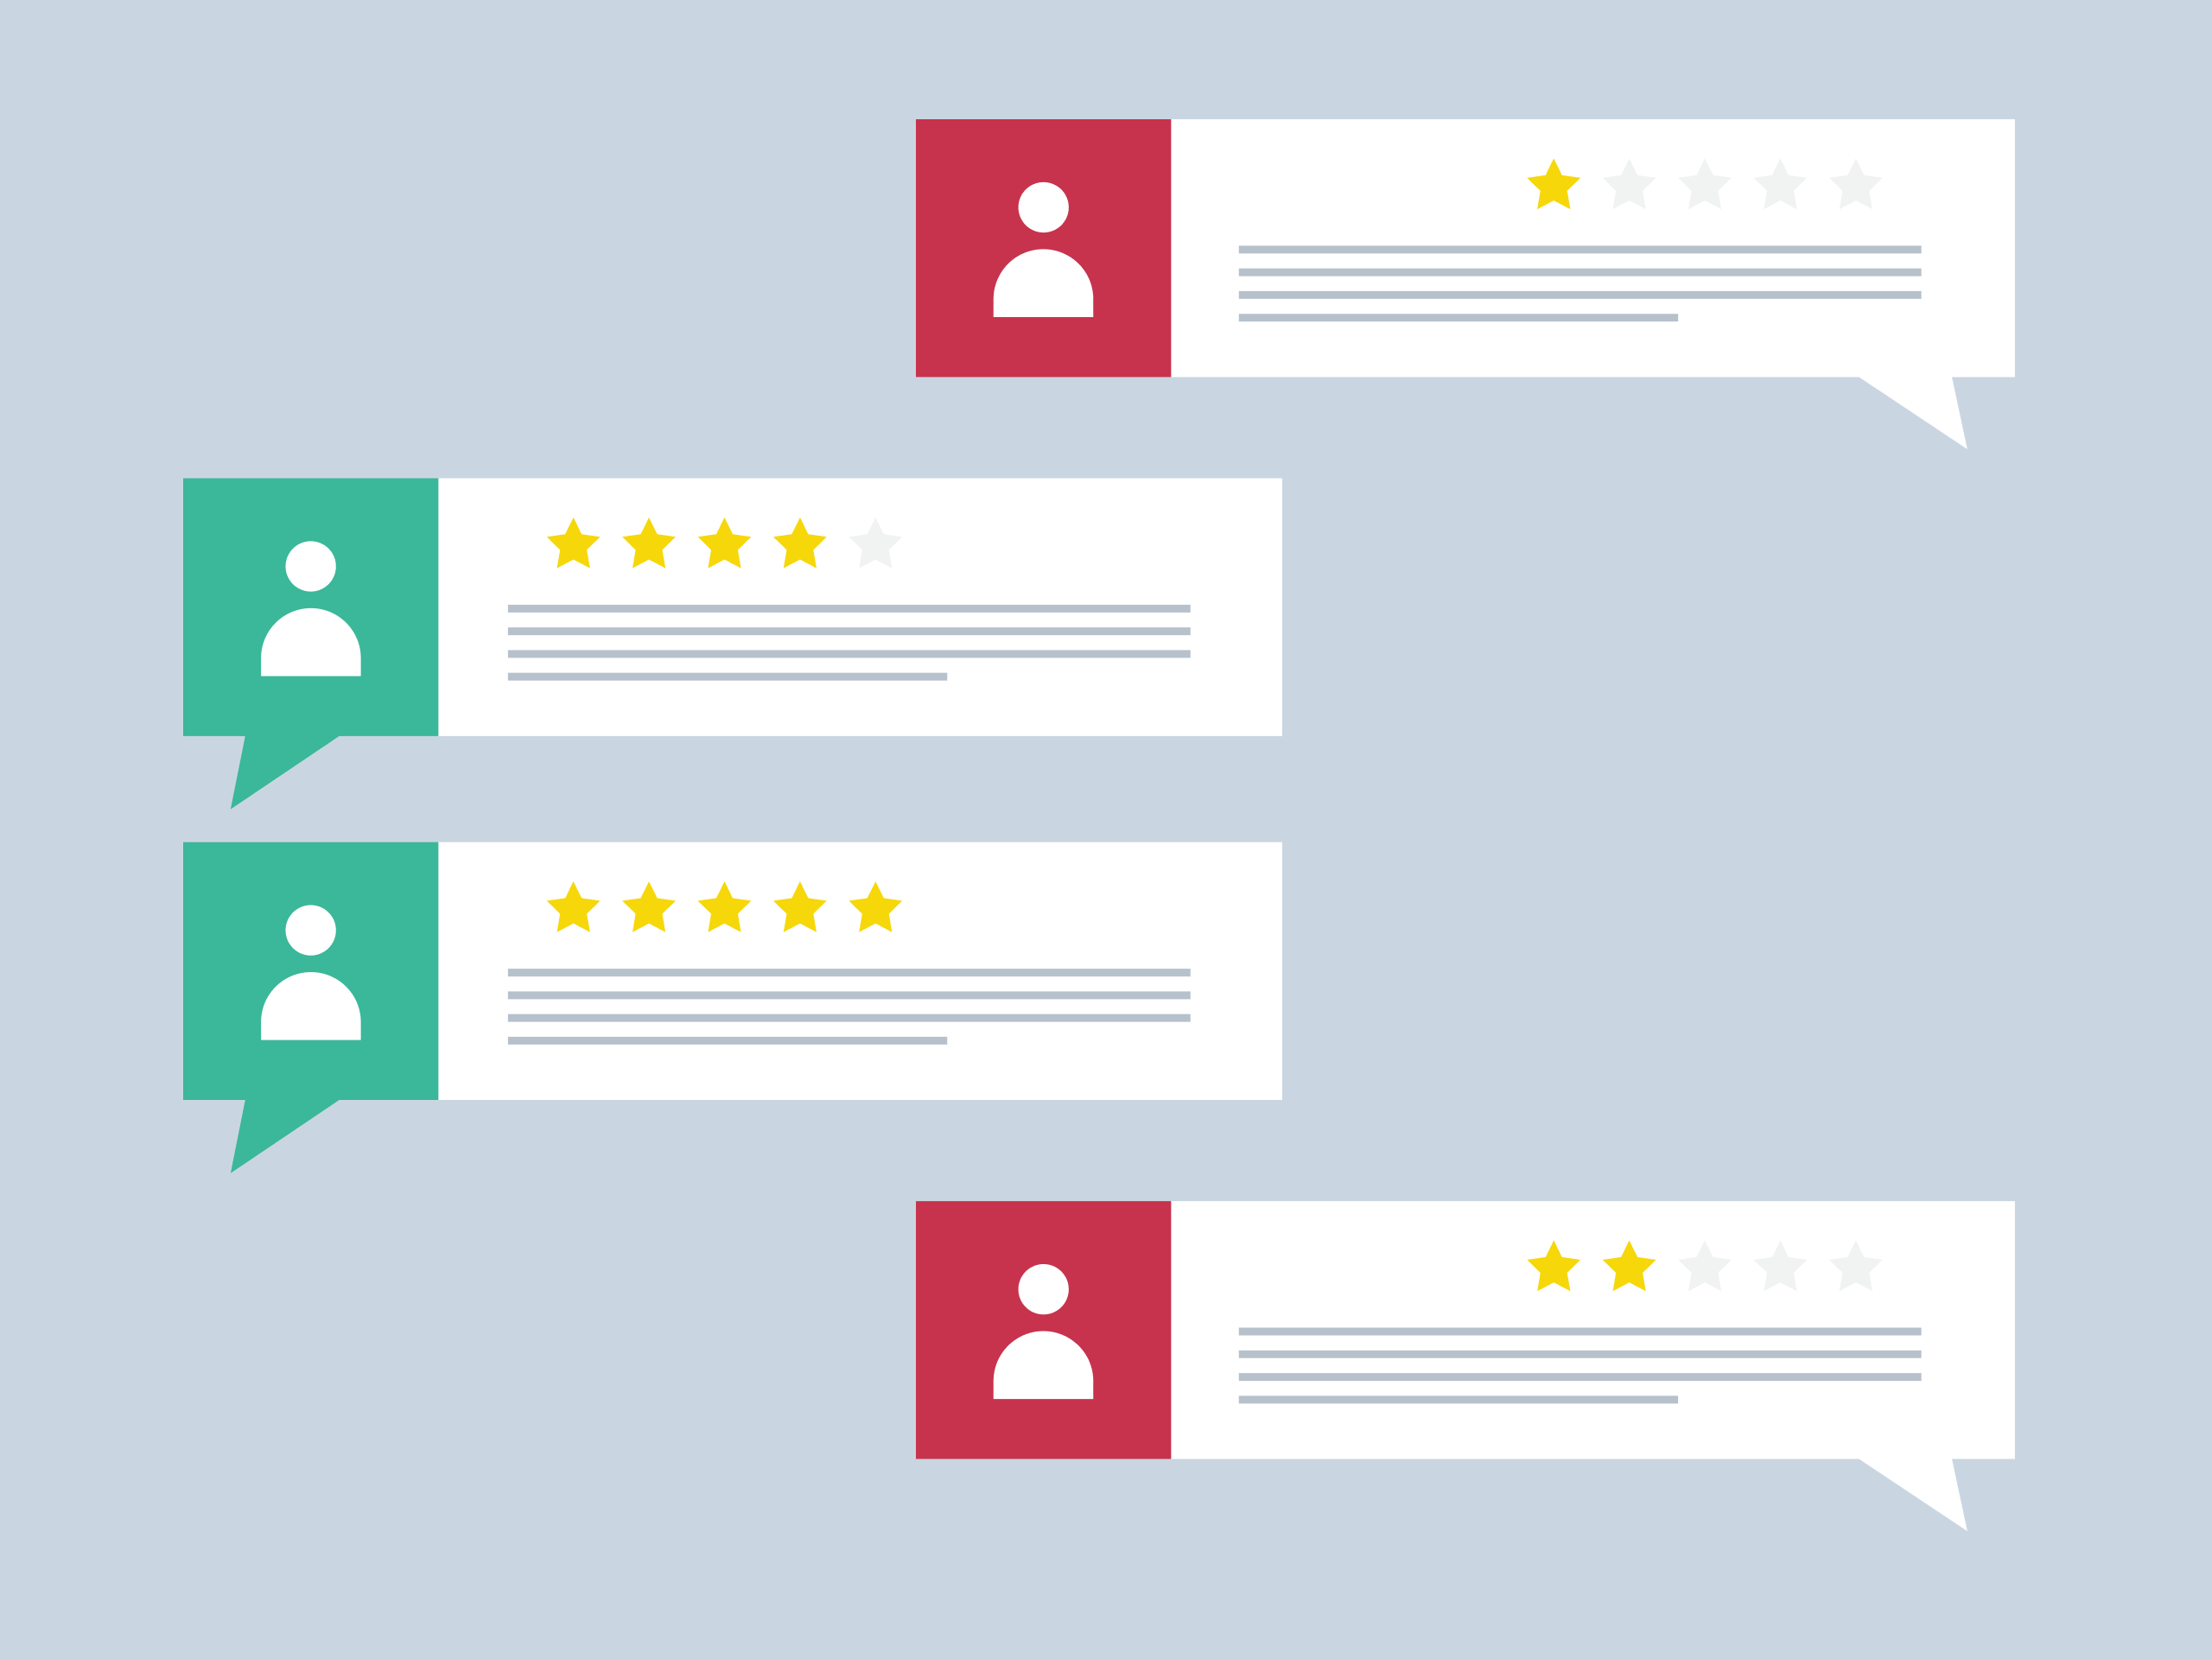 Classification of Yelp Reviews using Sentiment Analysis thumbnail